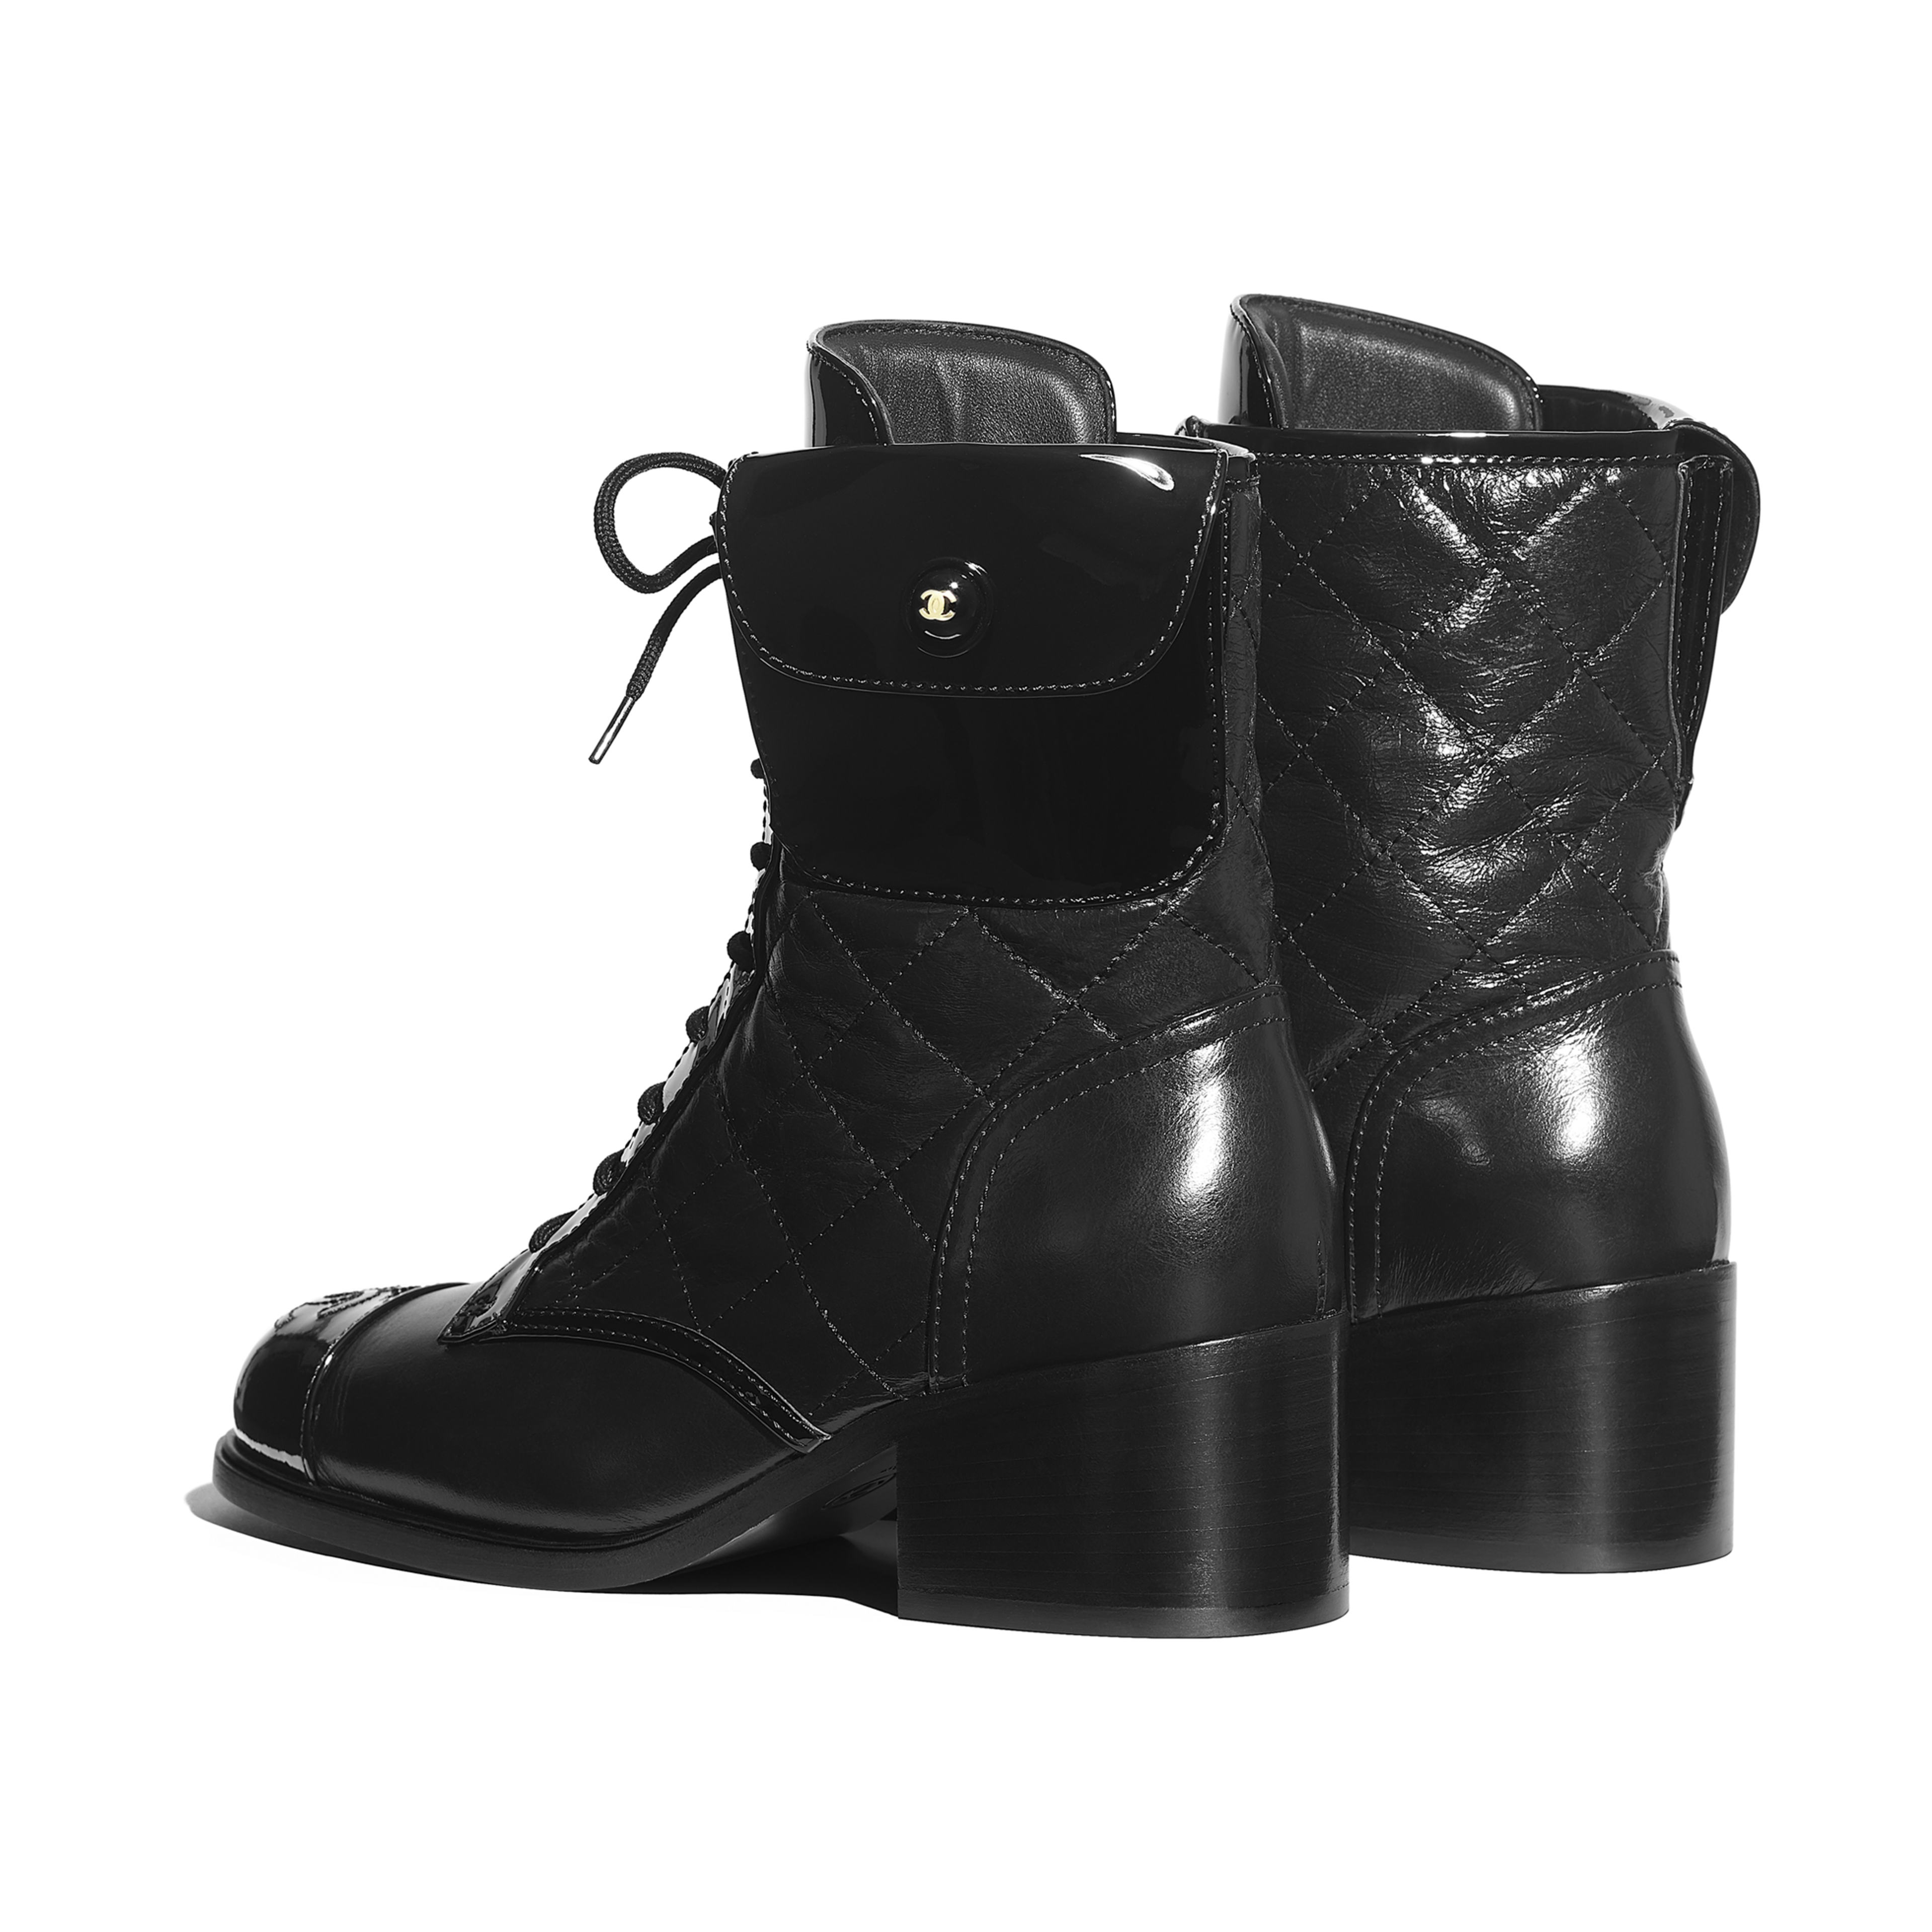 Ankle Boots - Black - Patent Calfskin & Crumpled Calfskin - Other view - see full sized version